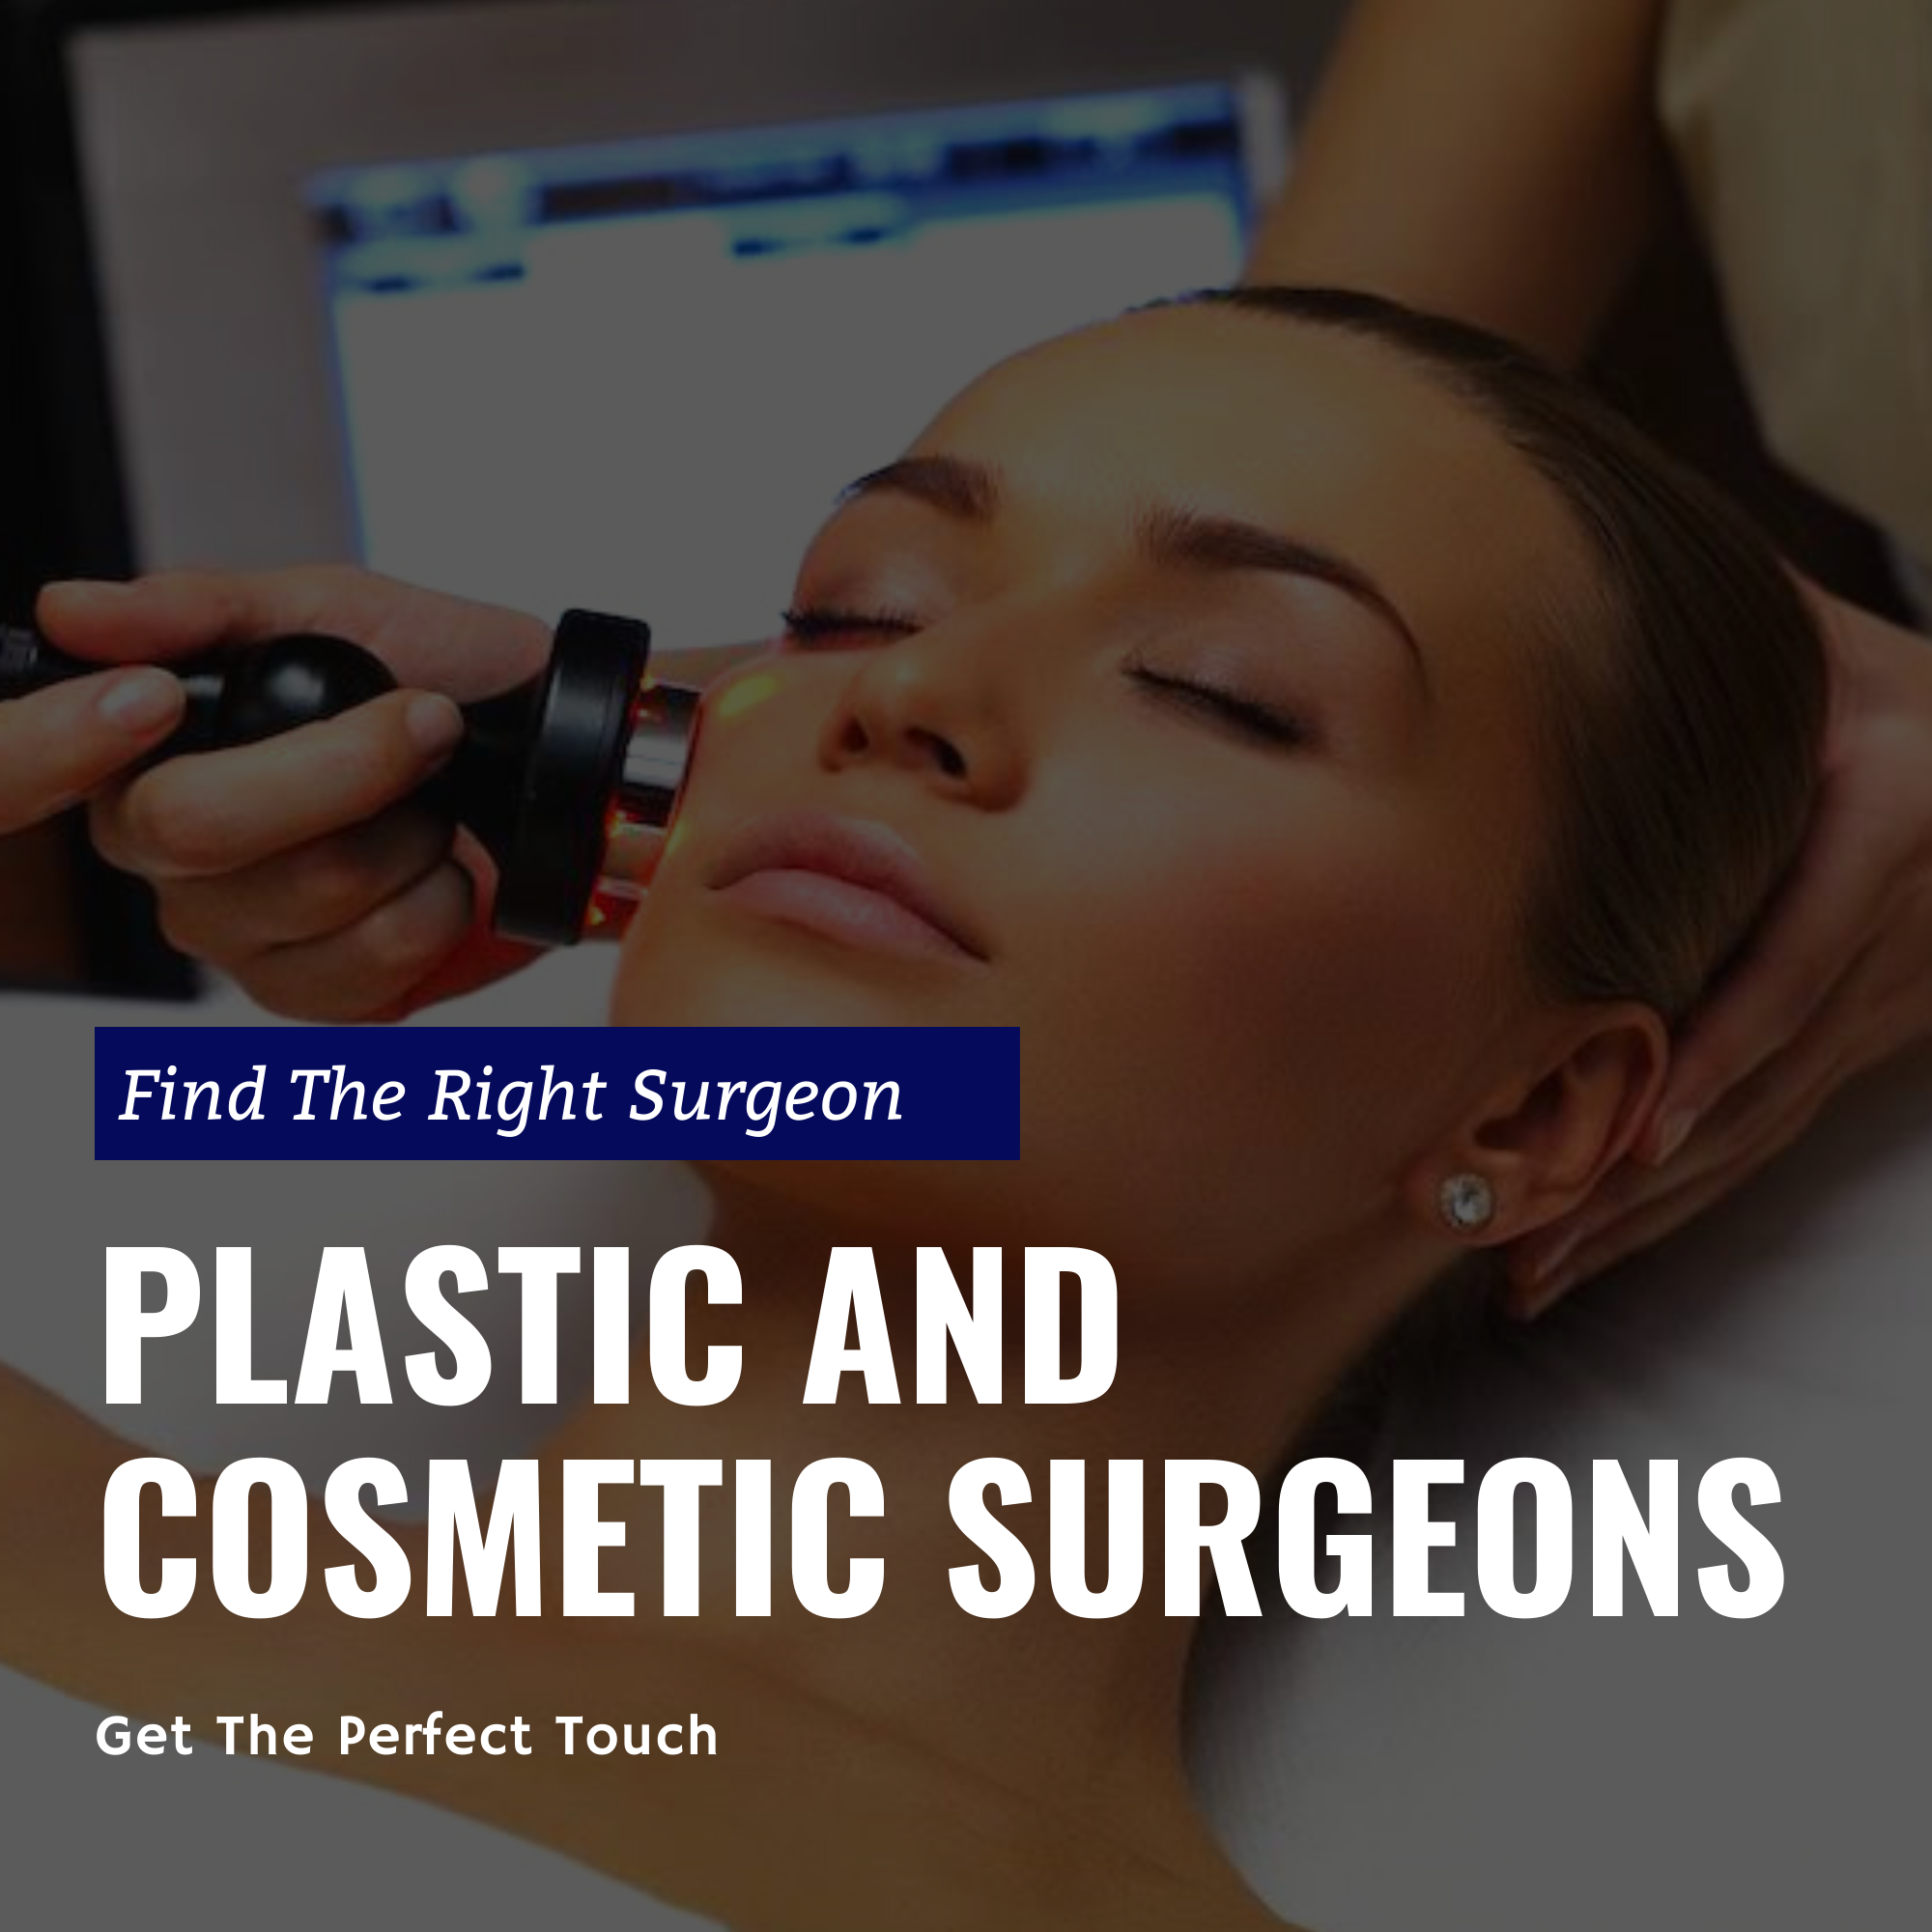 Plastic and cosmetic surgeons in India